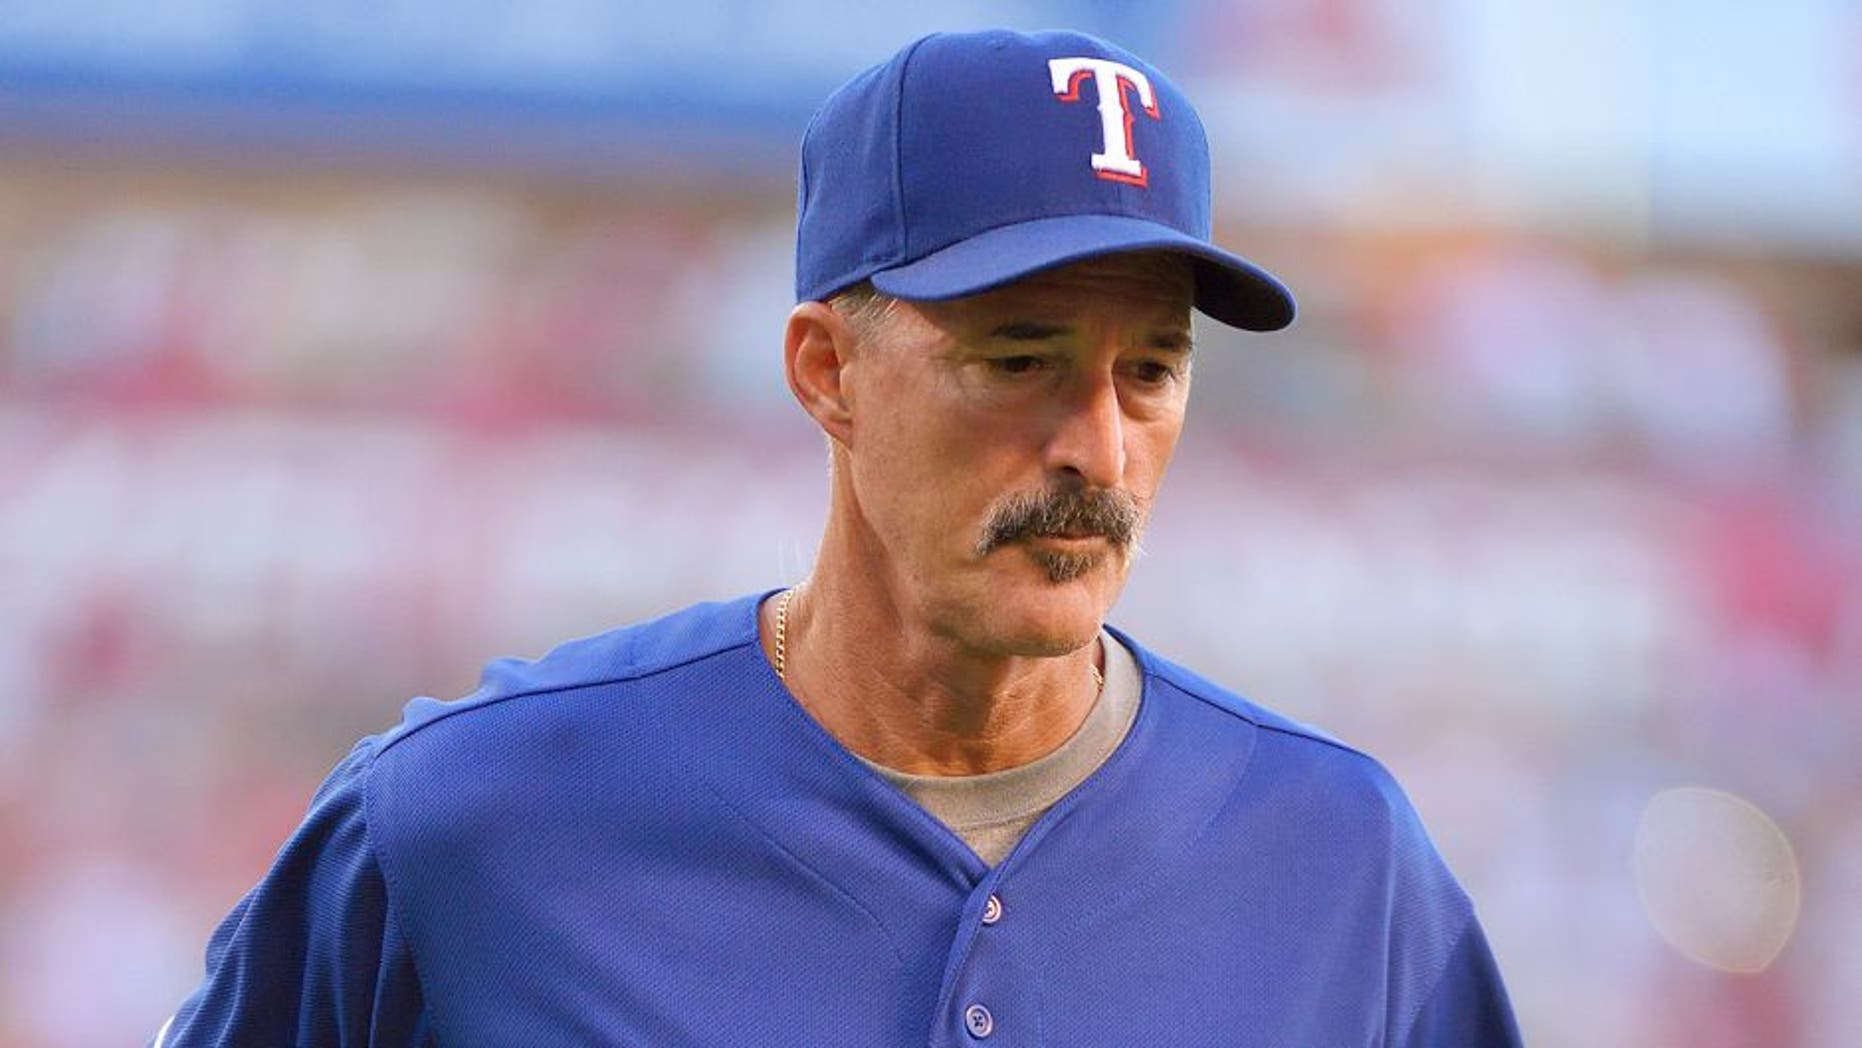 ANAHEIM, CA - JULY 25: Pitching coach Mike Maddux #31 of the Texas Rangers returns to the dugout after a visit to the mound during the second inning of the game against the Los Angeles Angels of Anaheim at Angel Stadium of Anaheim on July 25, 2015 in Anaheim, California. (Photo by Matt Brown/Angels Baseball LP/Getty Images)